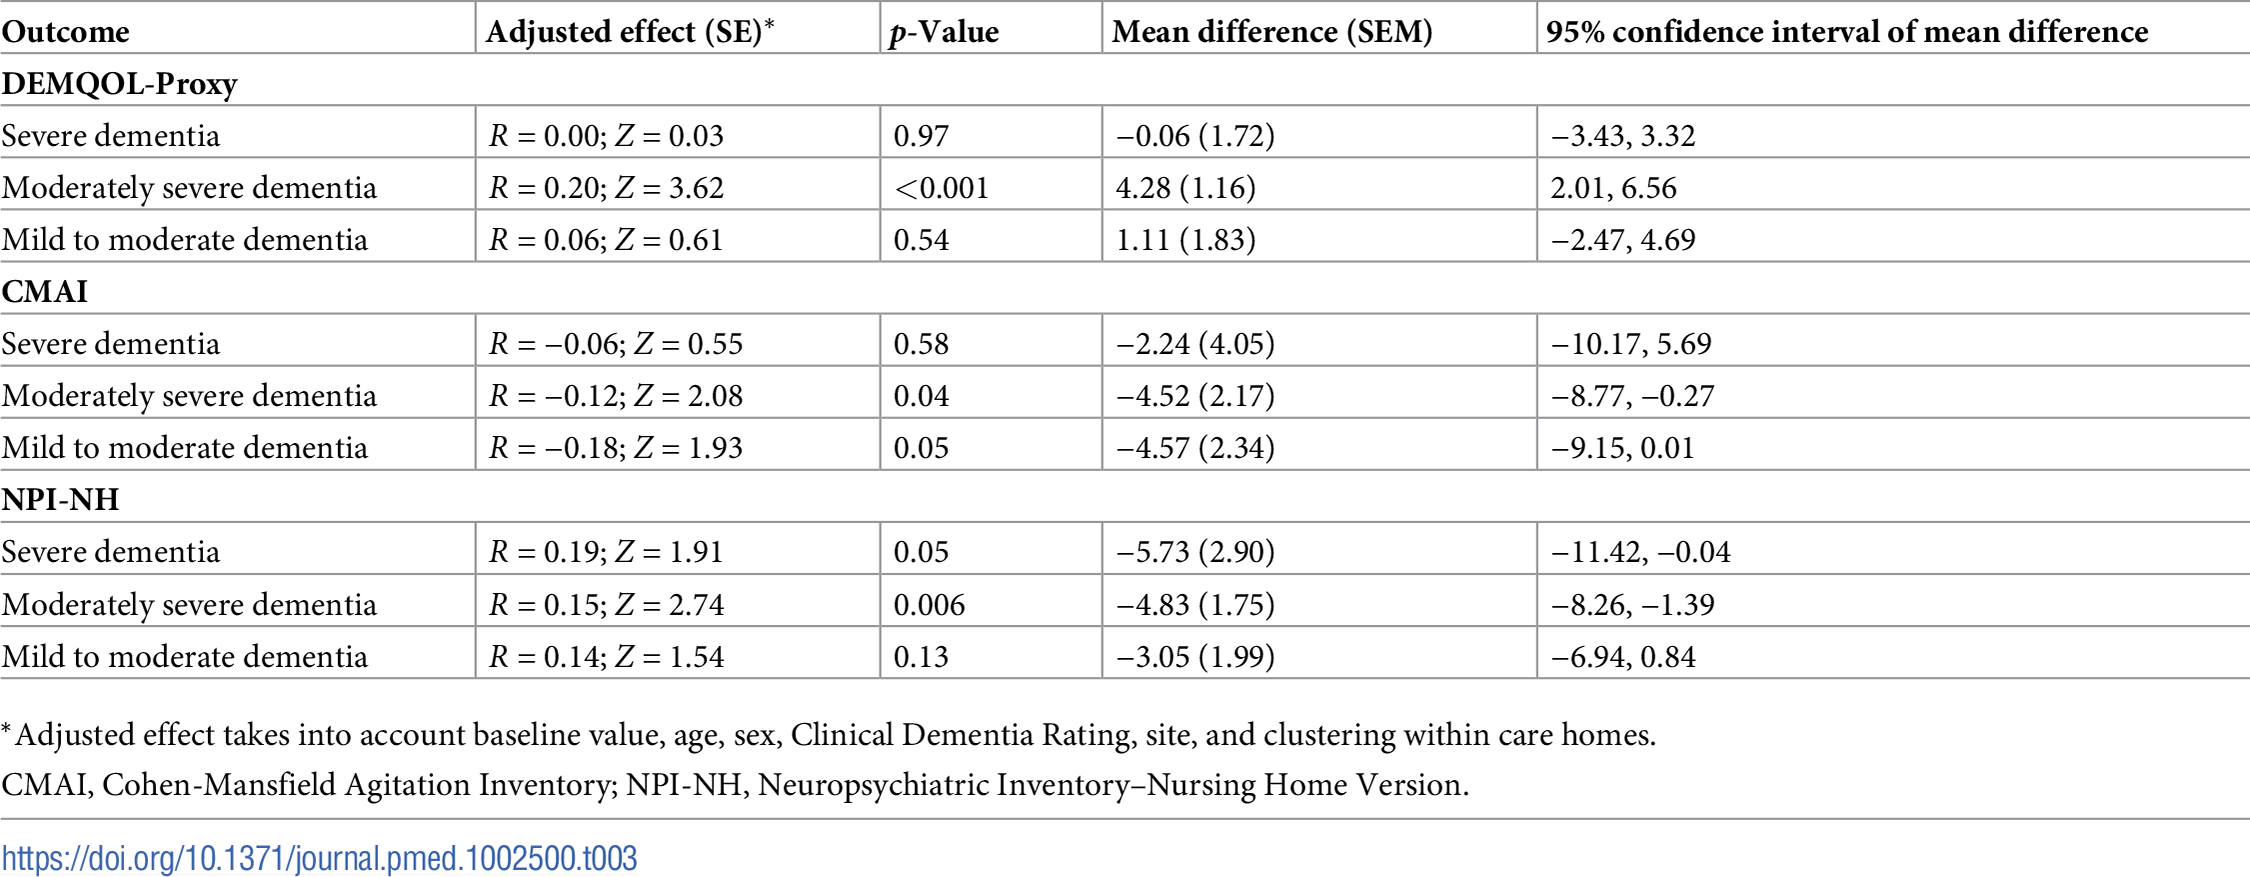 Effect estimates of the WHELD intervention in comparison to treatment as usual for key outcome measures (multiple imputation analysis): Sub-analysis evaluating impact of WHELD in mild to moderate, moderately severe, and severe dementia.